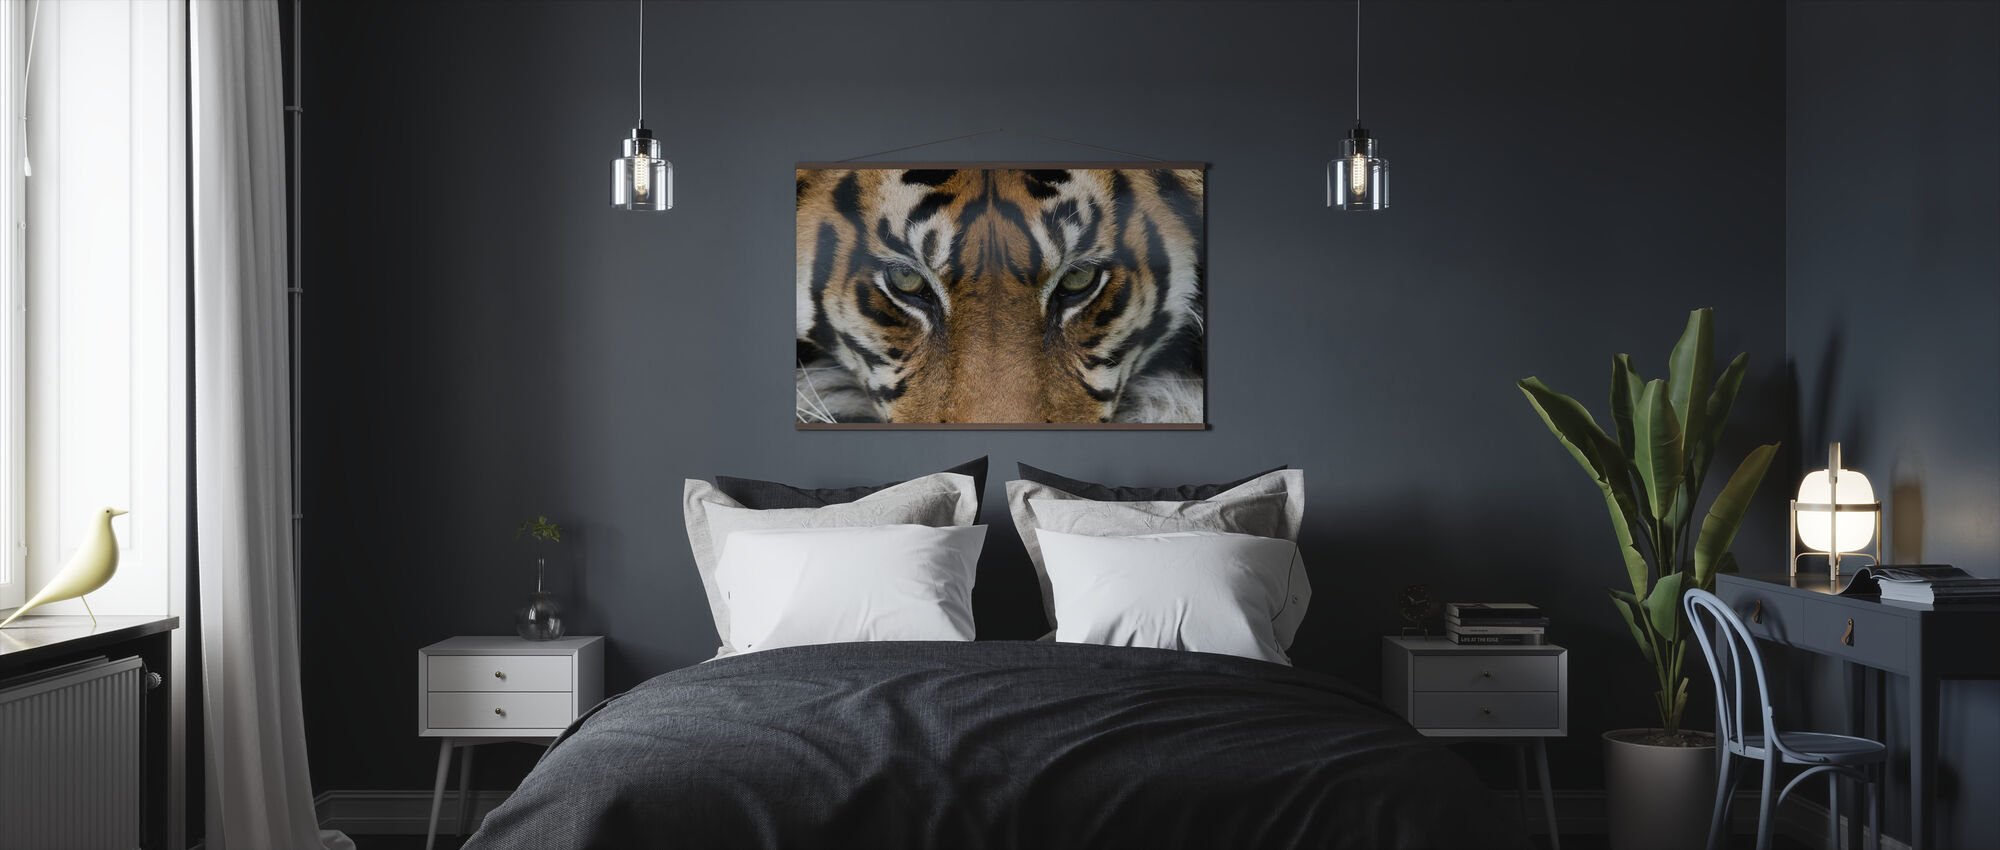 Eye of the Tiger - Poster - Bedroom